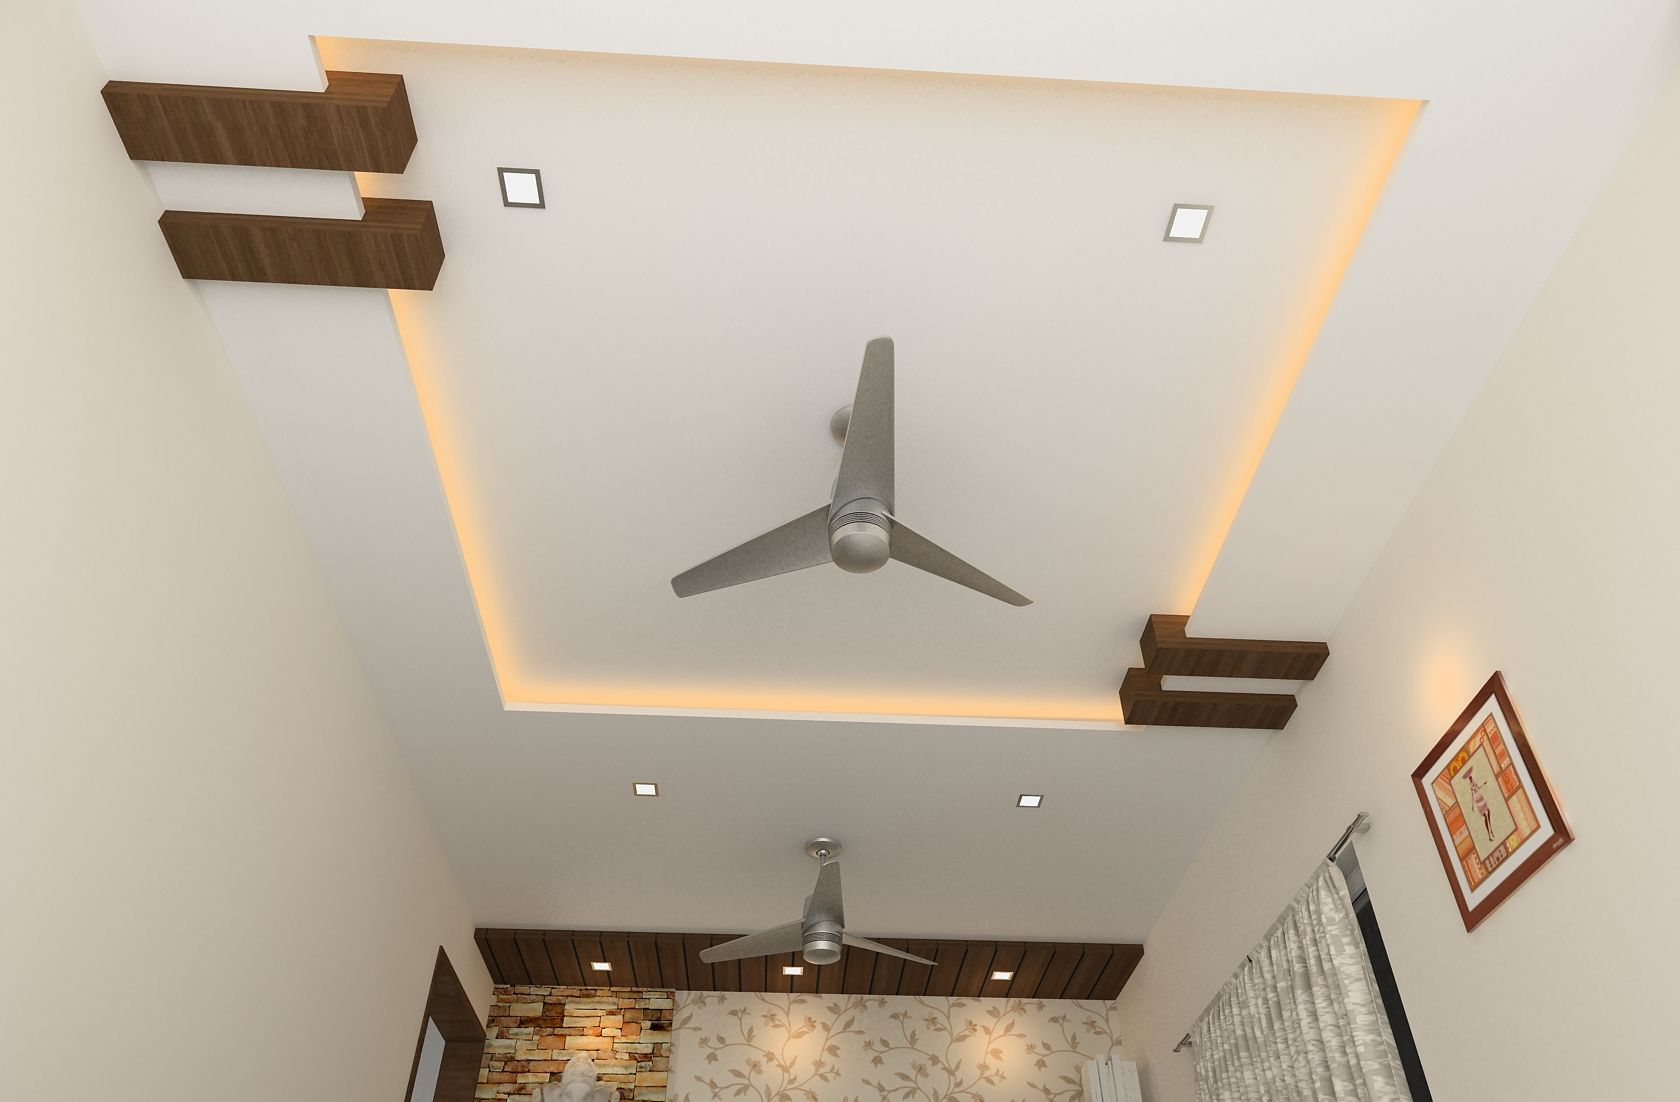 Simple Square Ceiling With Wooden Beams False Ceiling In Lobby Ceiling Design Bedroom Simple Ceiling Design Ceiling Design Living Room